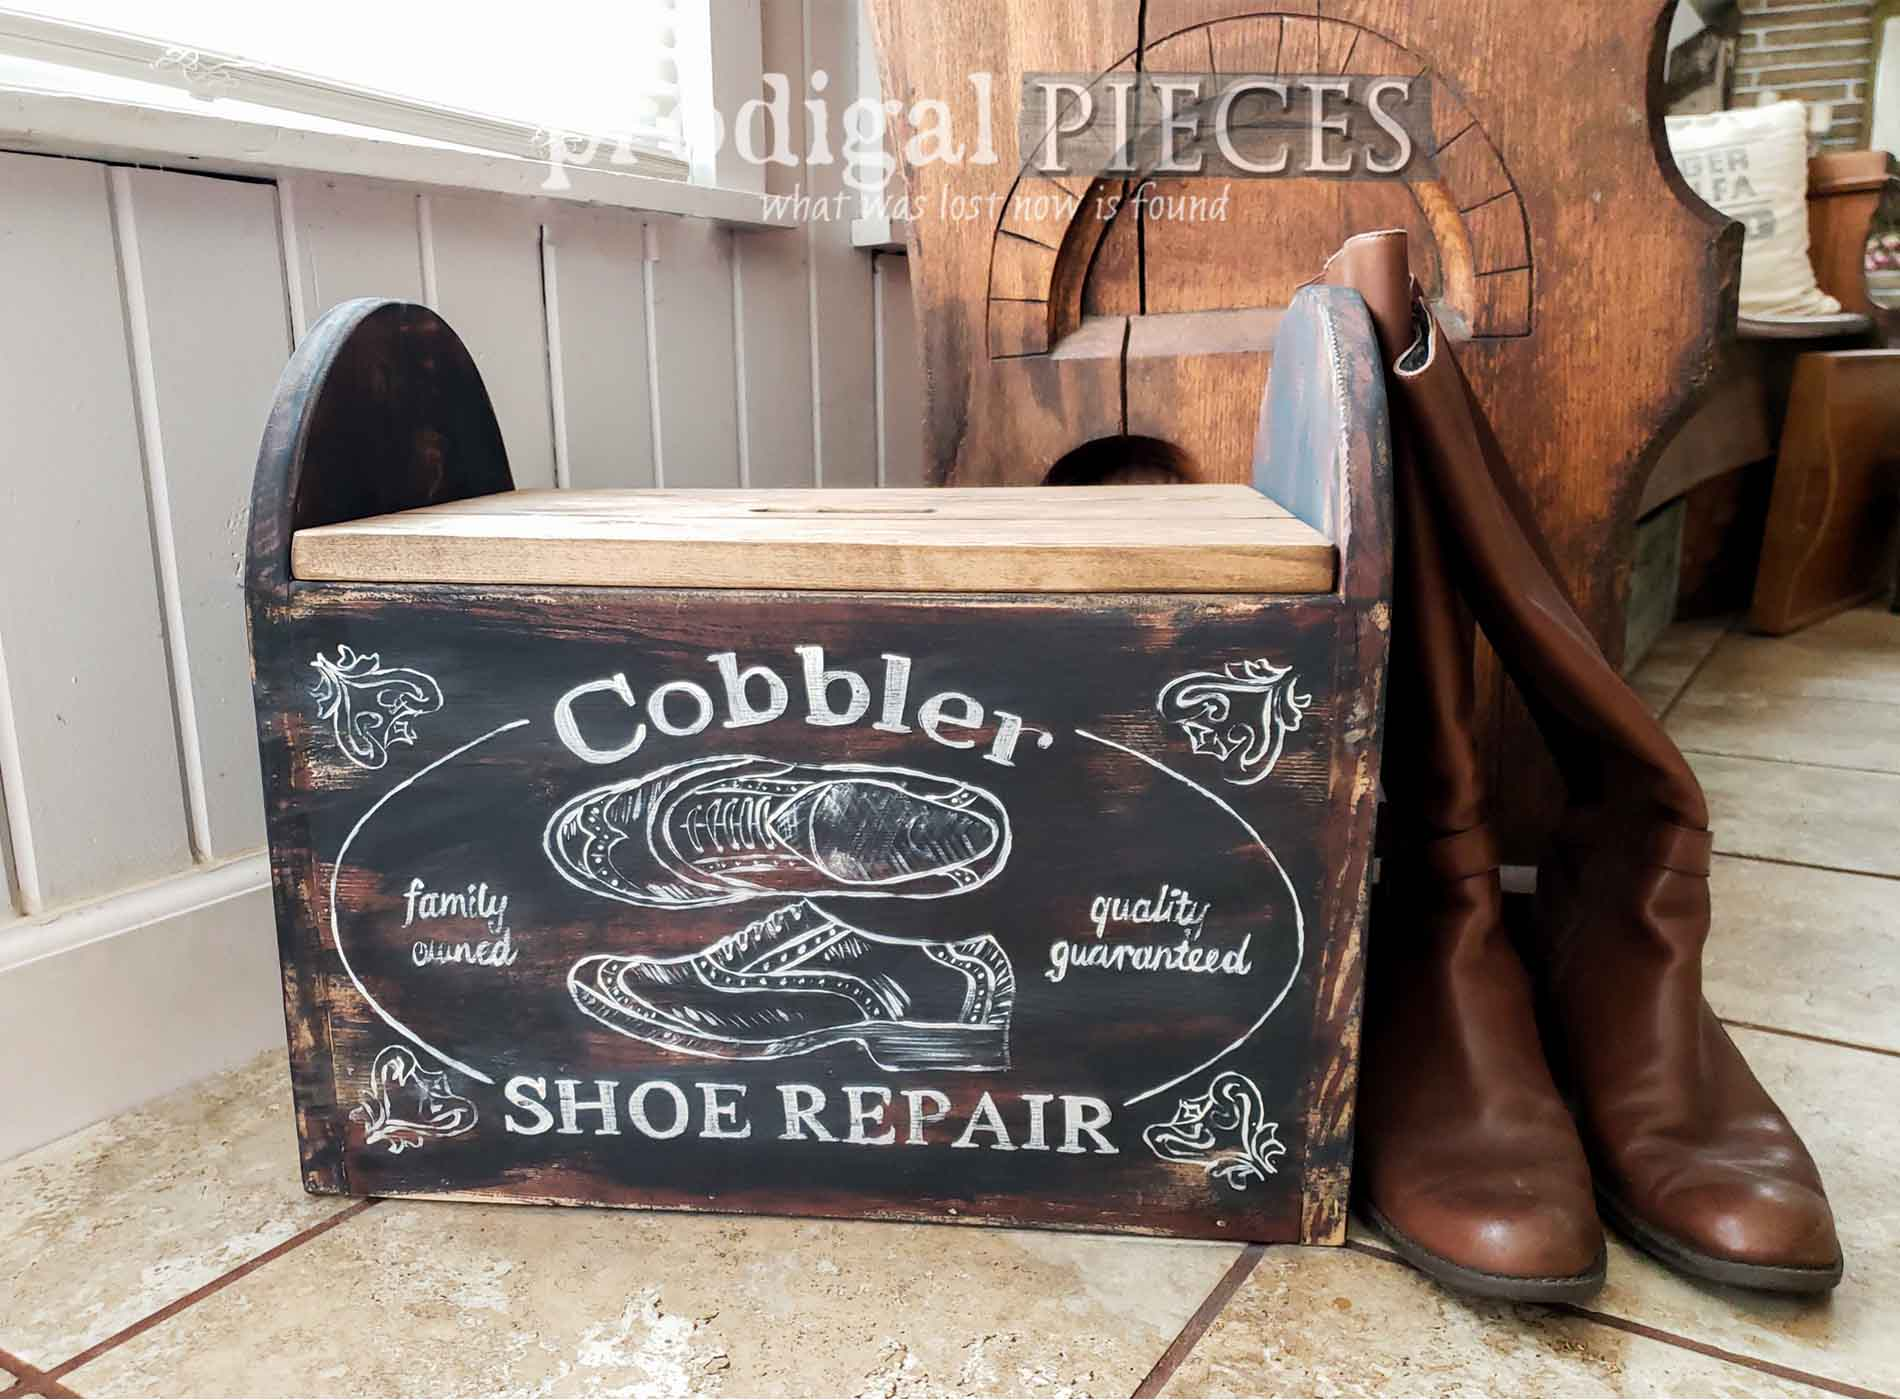 Featured Farmhouse Cobbler Bin from Thrifted Find by Larissa of Prodigal Pieces | prodigalpieces.com #prodigalpieces #farmhouse #home #homedecor #diy #storage